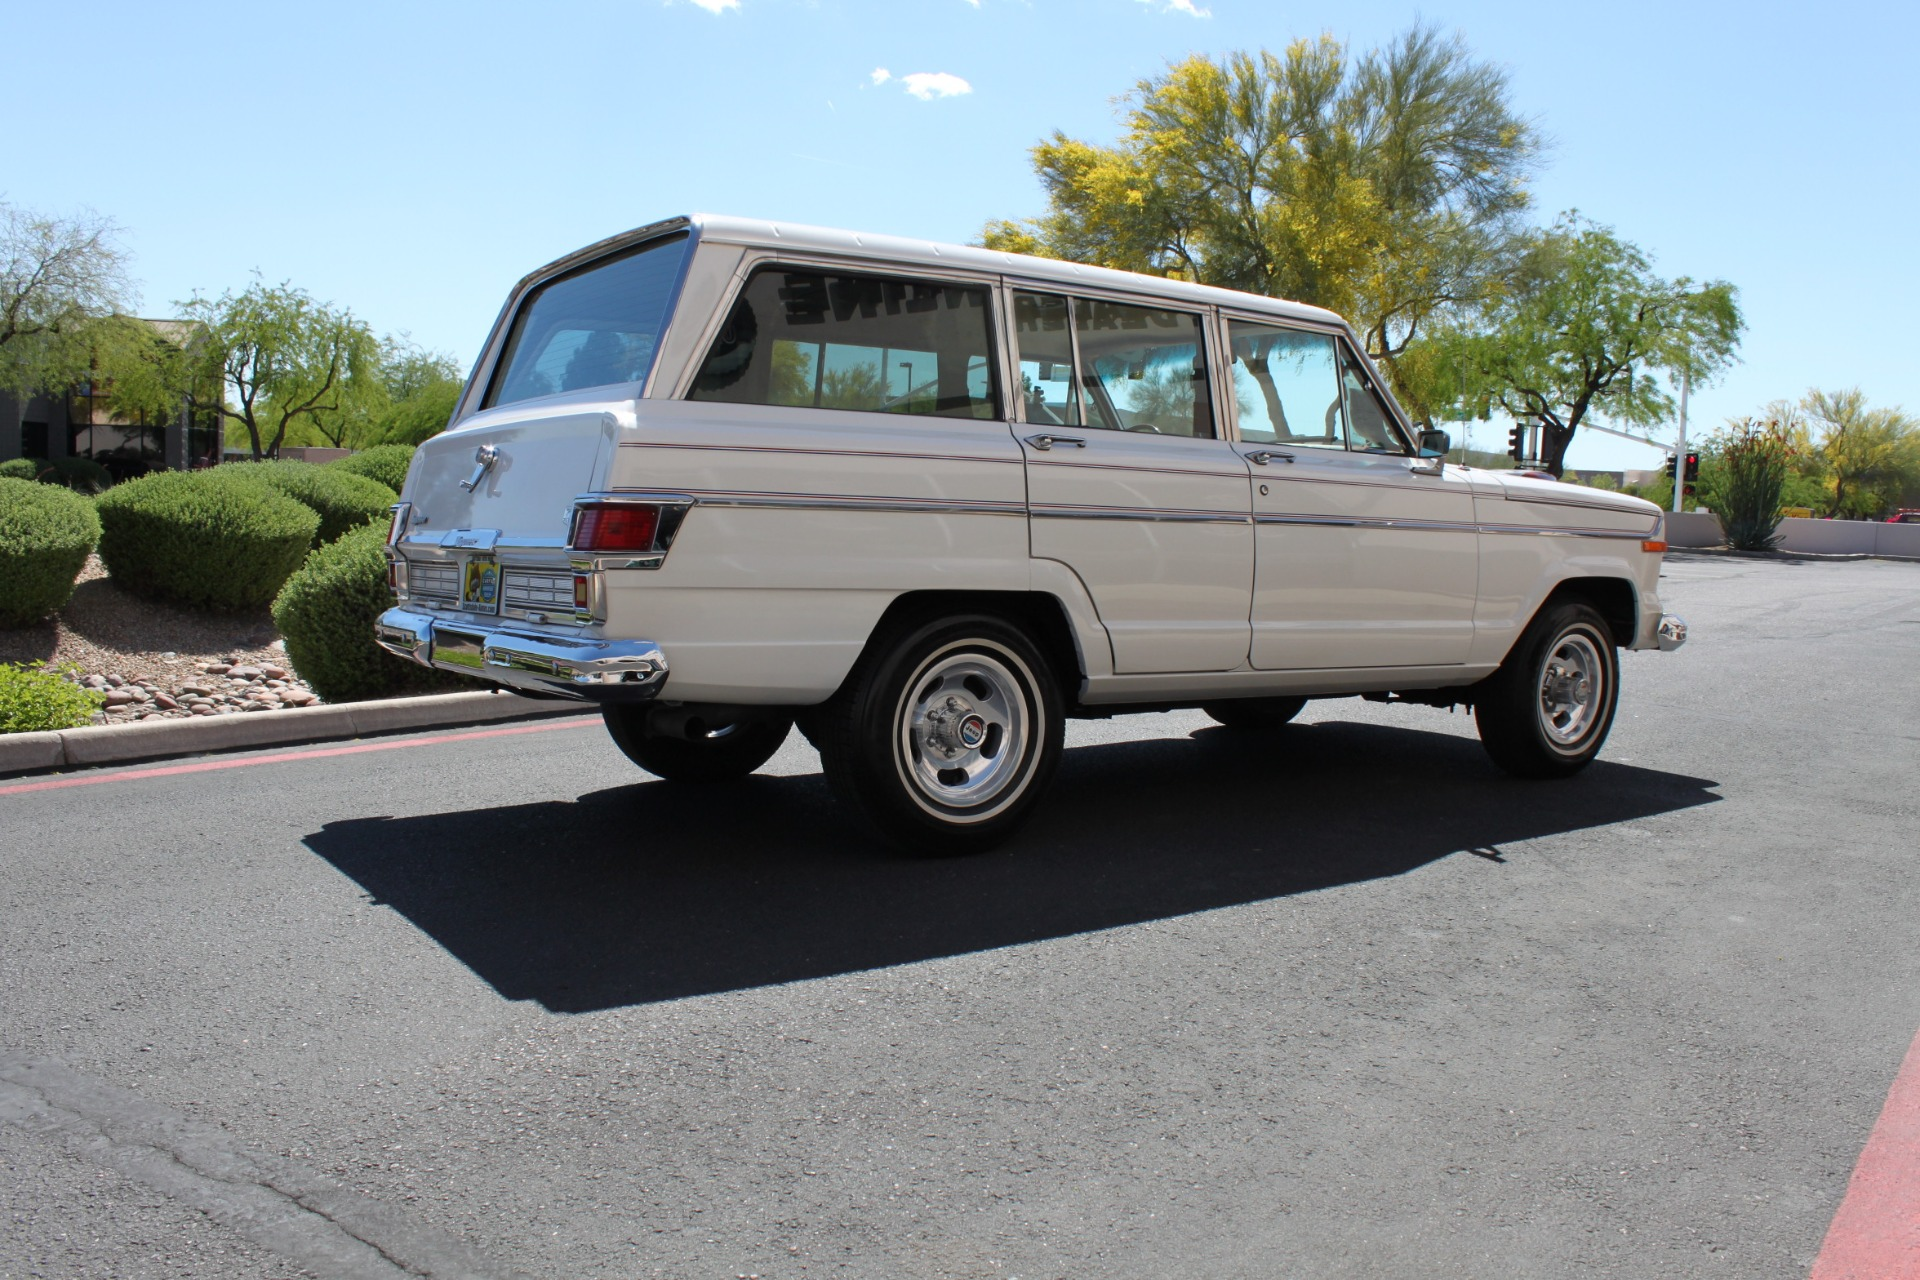 Used-1977-Jeep-Wagoneer-Custom-Fuel-Injected-66-Liter-401-Land-Cruiser